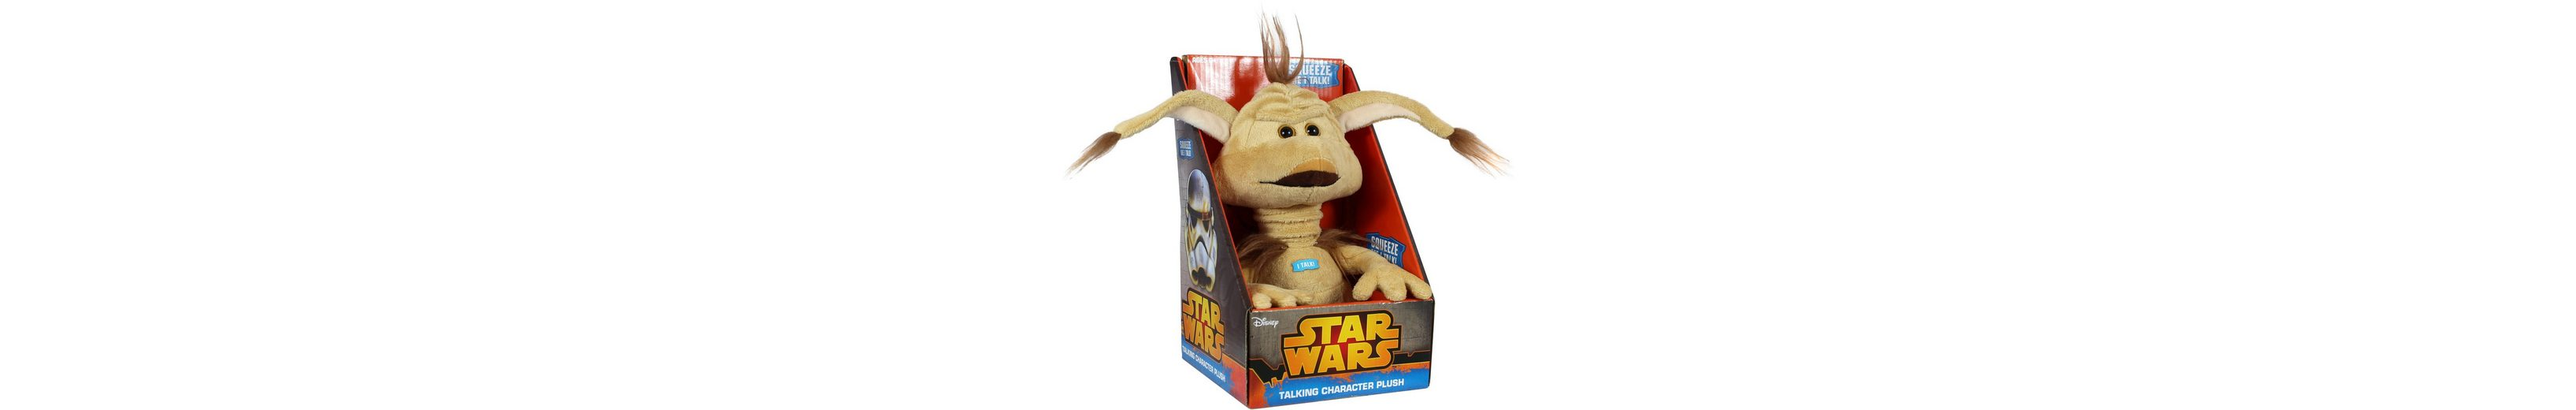 Plüschfigur mit Sound, »Disney Star Wars™ Collectors Edition, Salacious Crumb, ca. 23 cm«